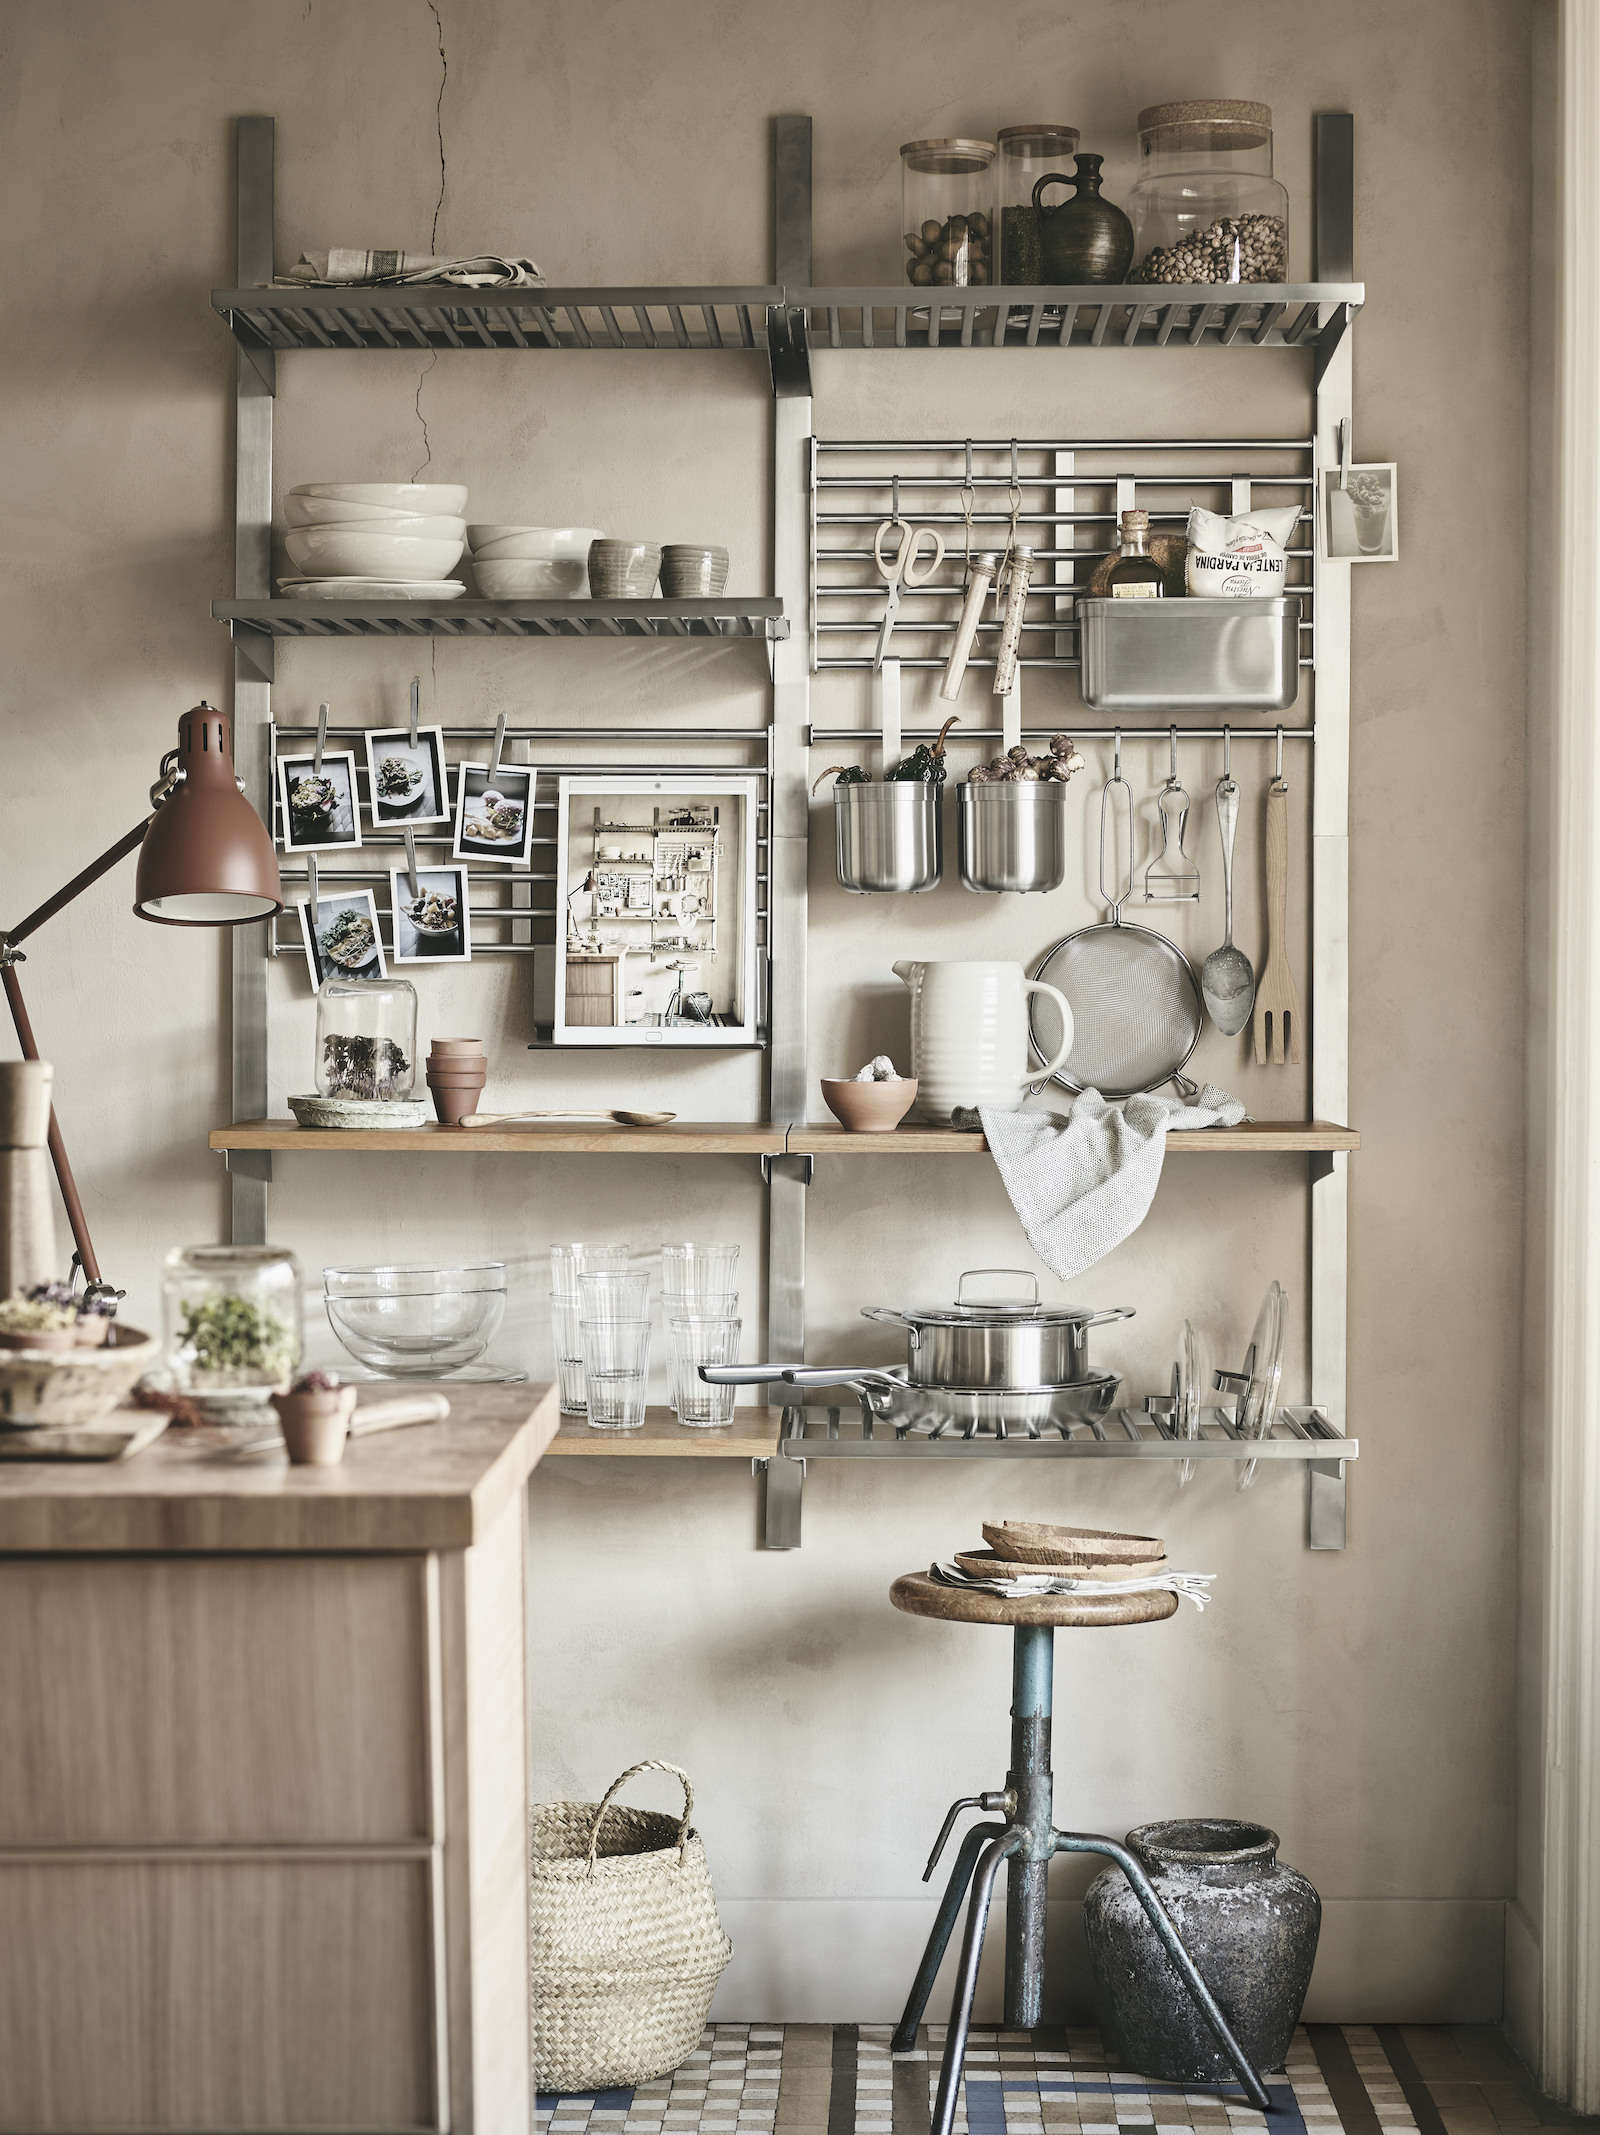 5 Favorites from Ikea's 2018 Spring Collection